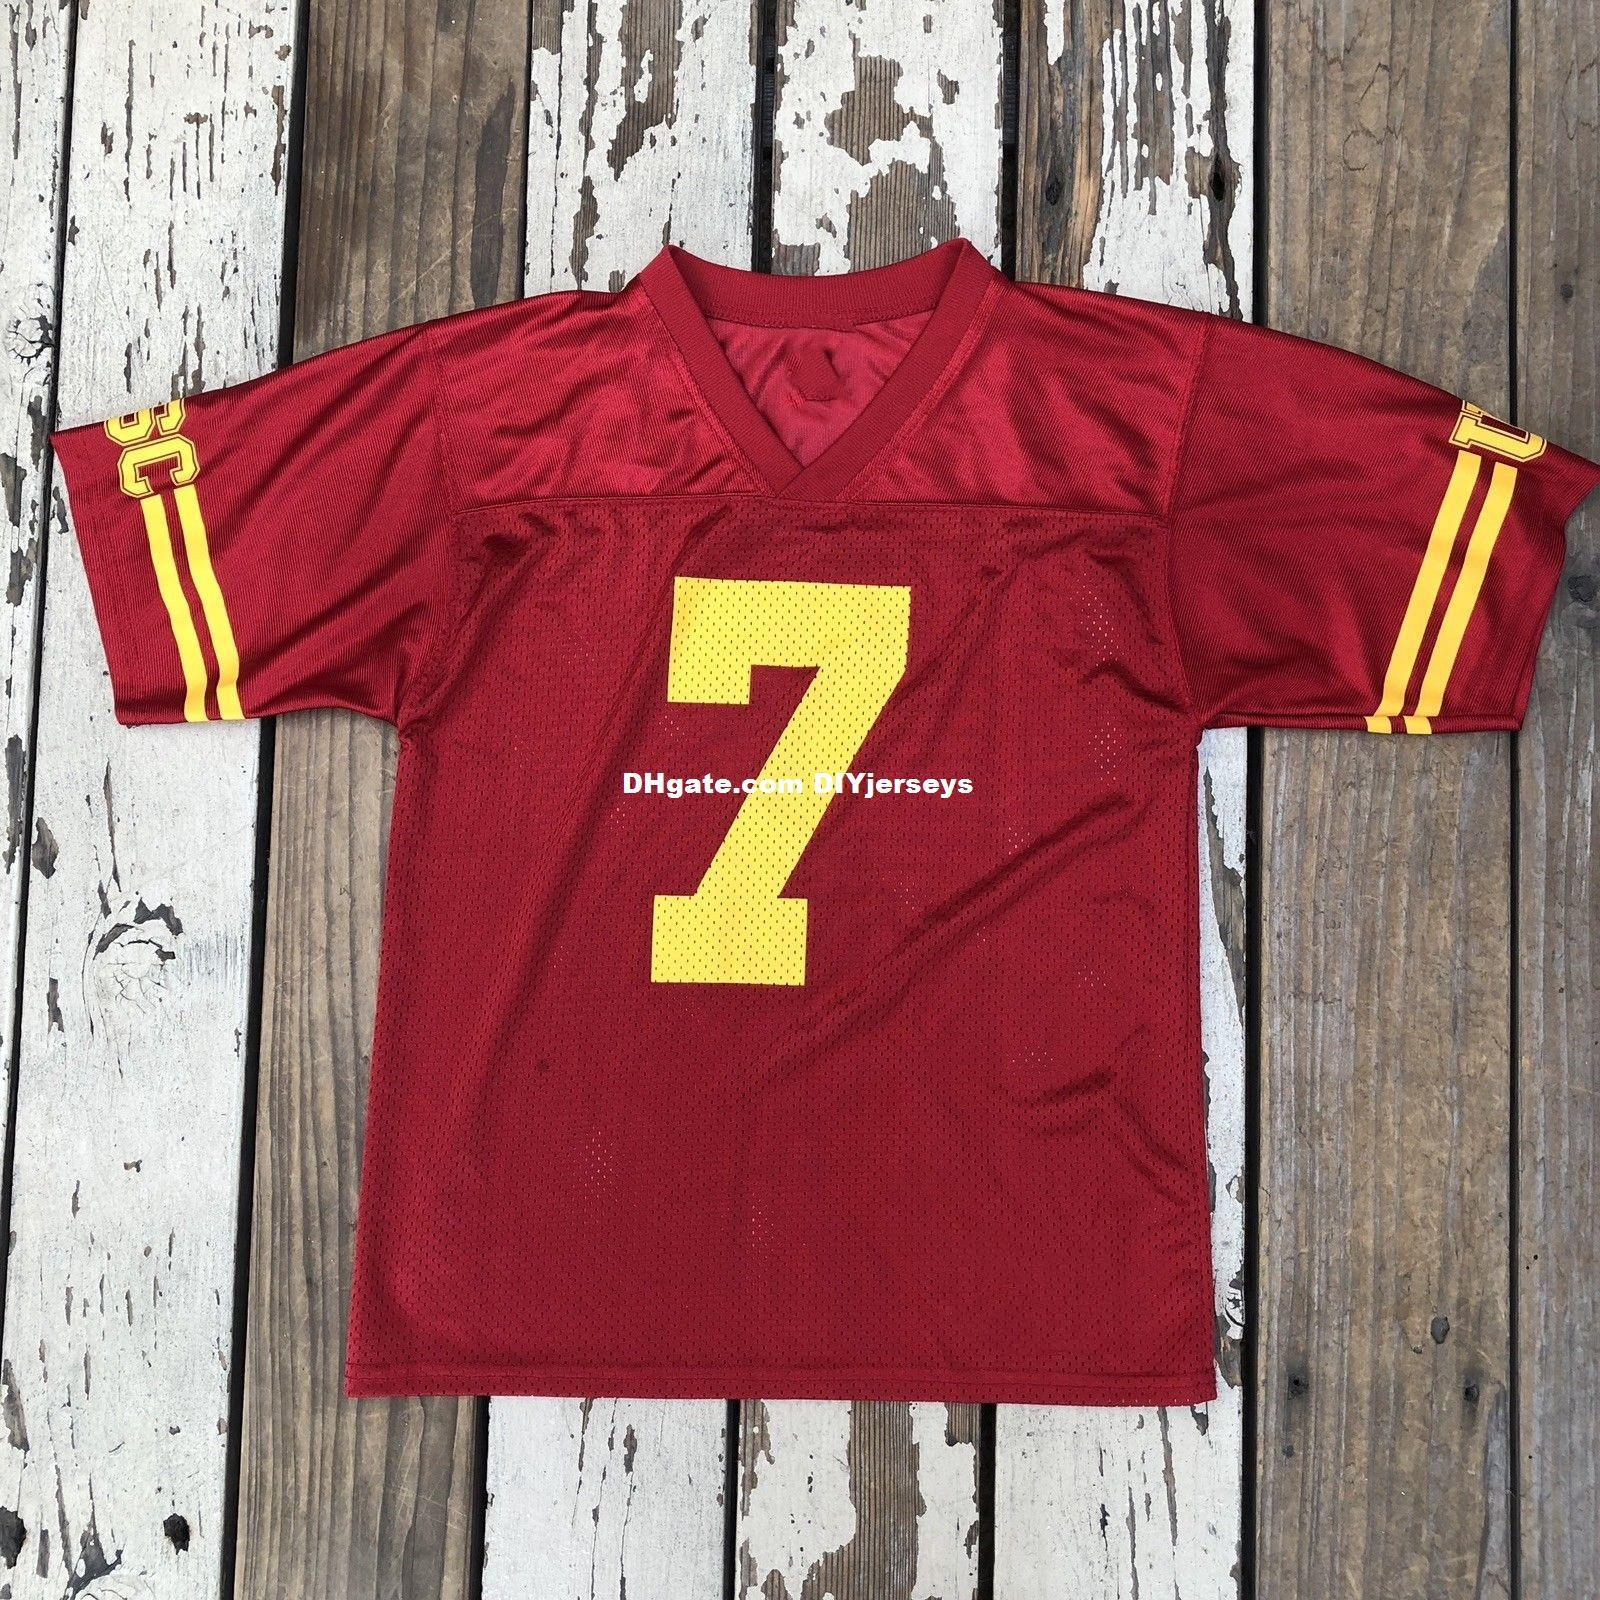 23d389936 ... sale 2019 wholesale cheap ncaa usc trojans 7 jersey customize any name  no. men women